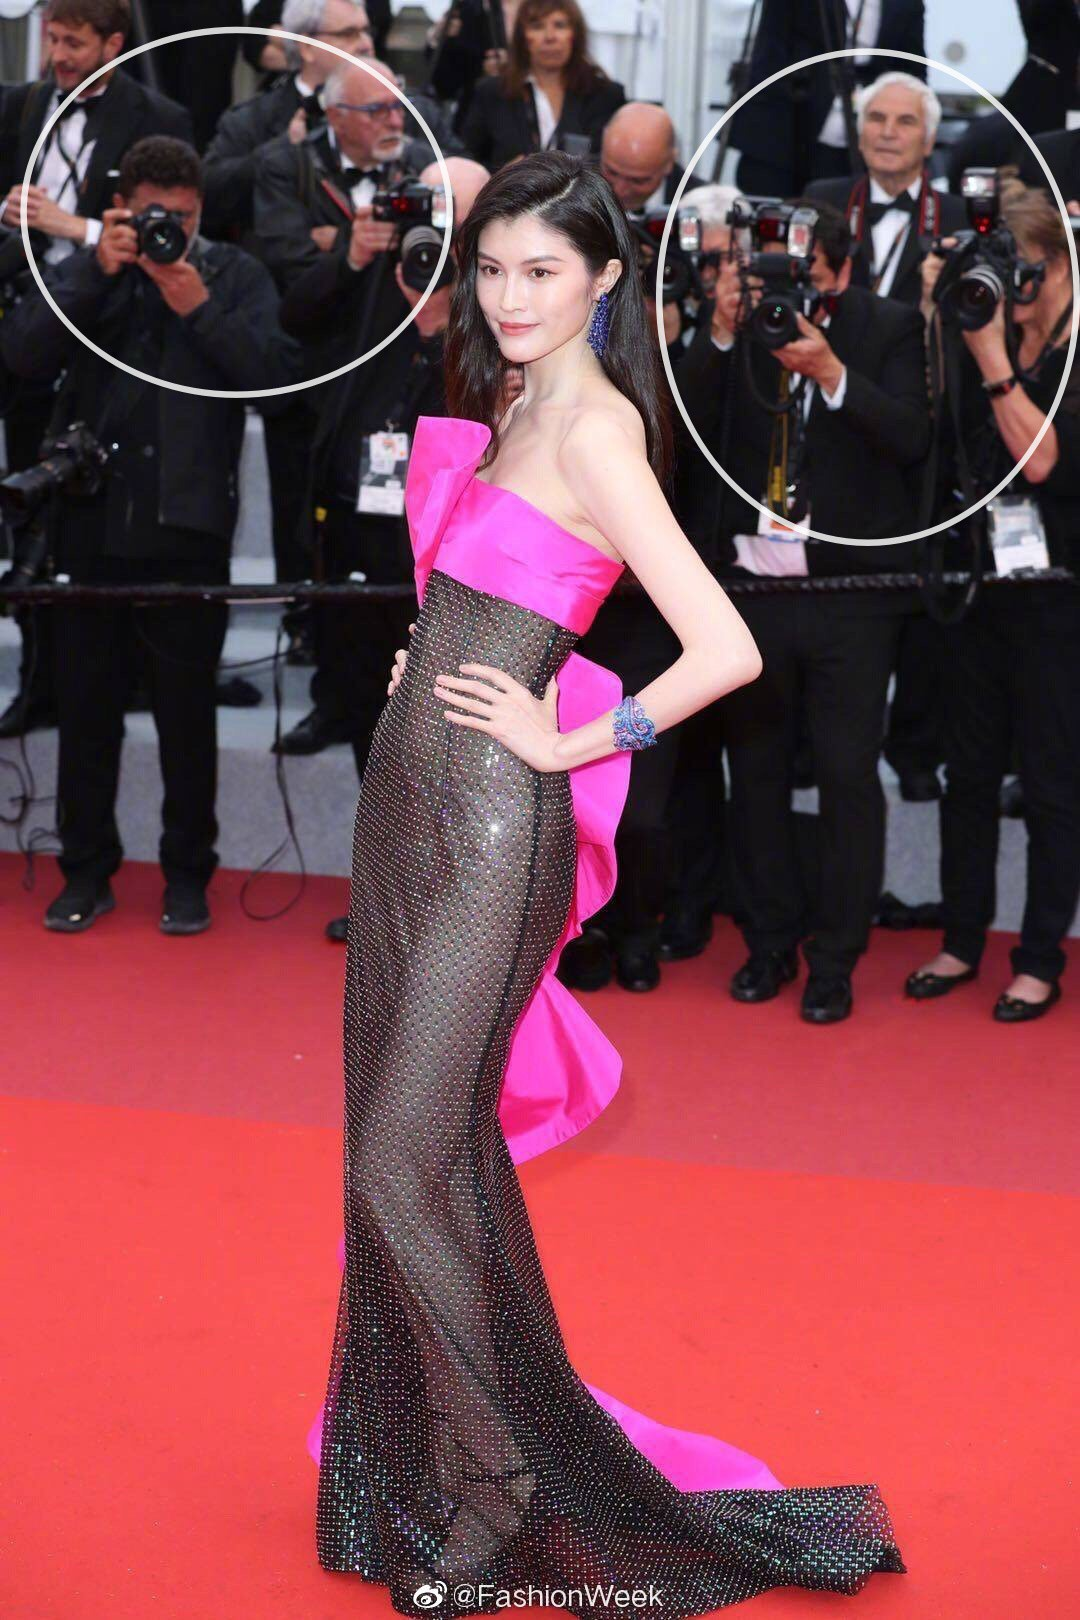 Sui-He-3 Sui He's wearing the shocking costumes on Cannes red carpet  %Post Title, %Image Name